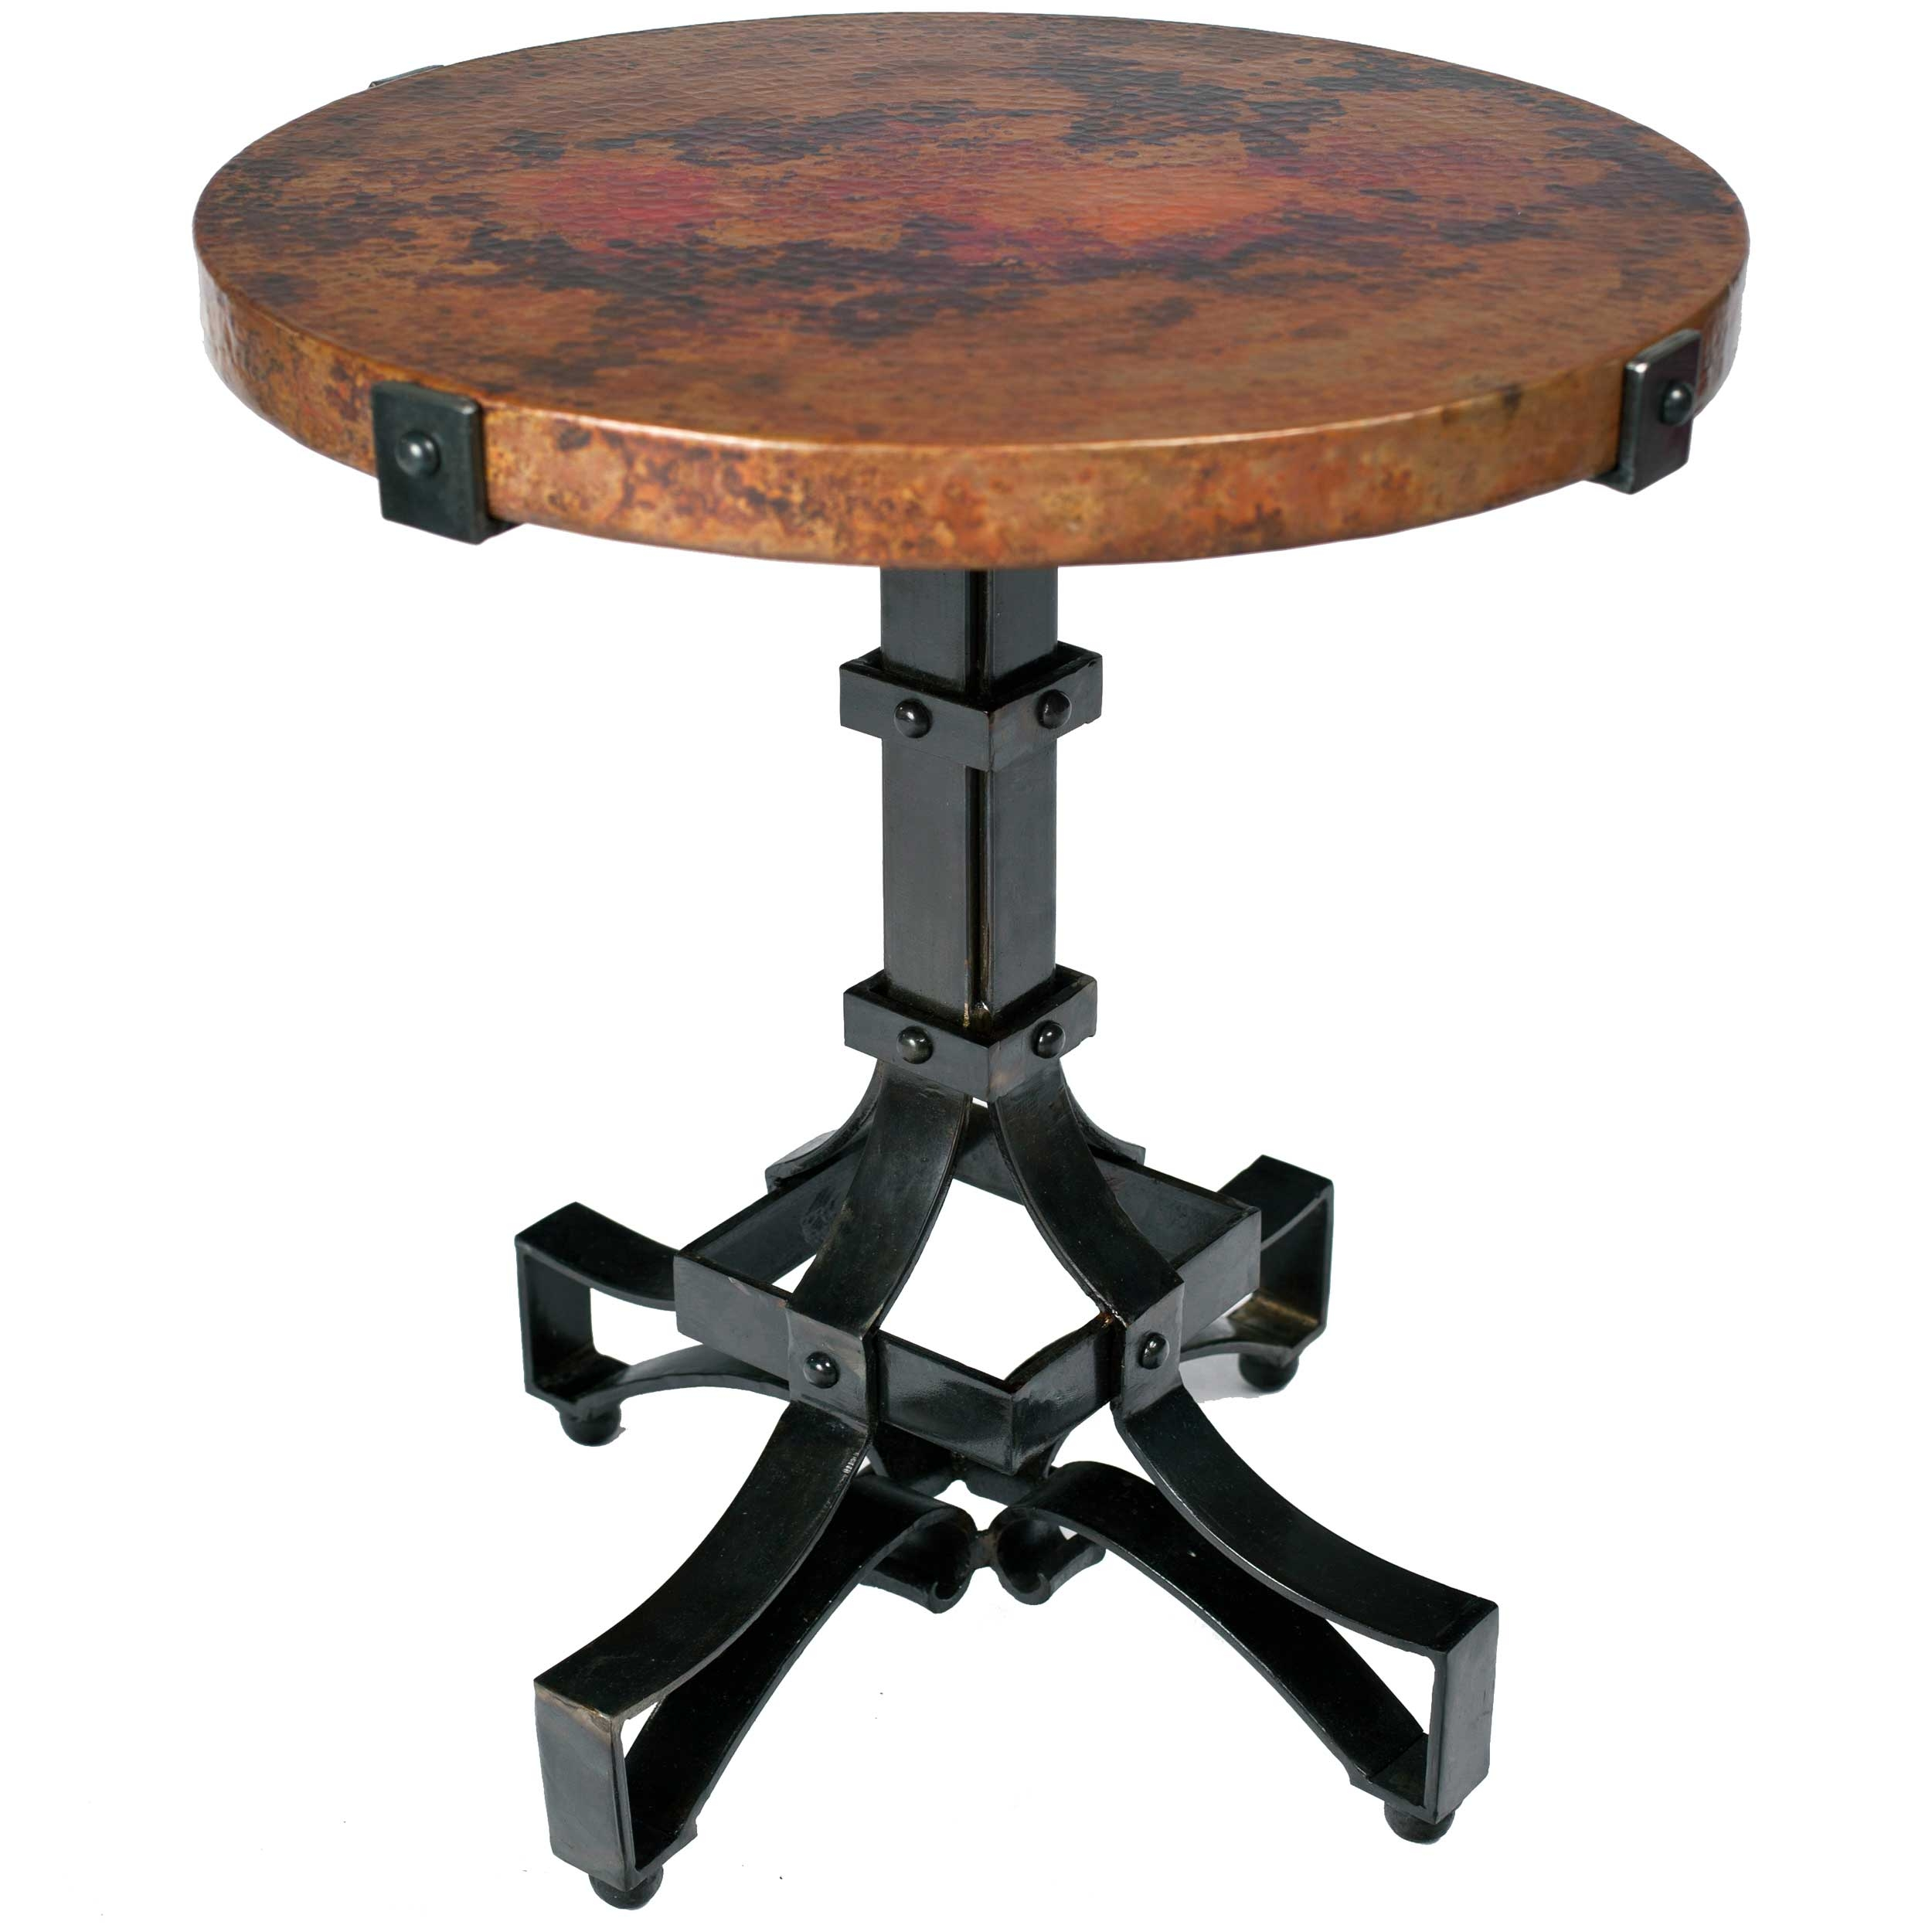 antique garden round accent black metal white classic pedestal table half outdoor distressed small end patio side and full size tables inch furniture legs ikea lamp shades modern